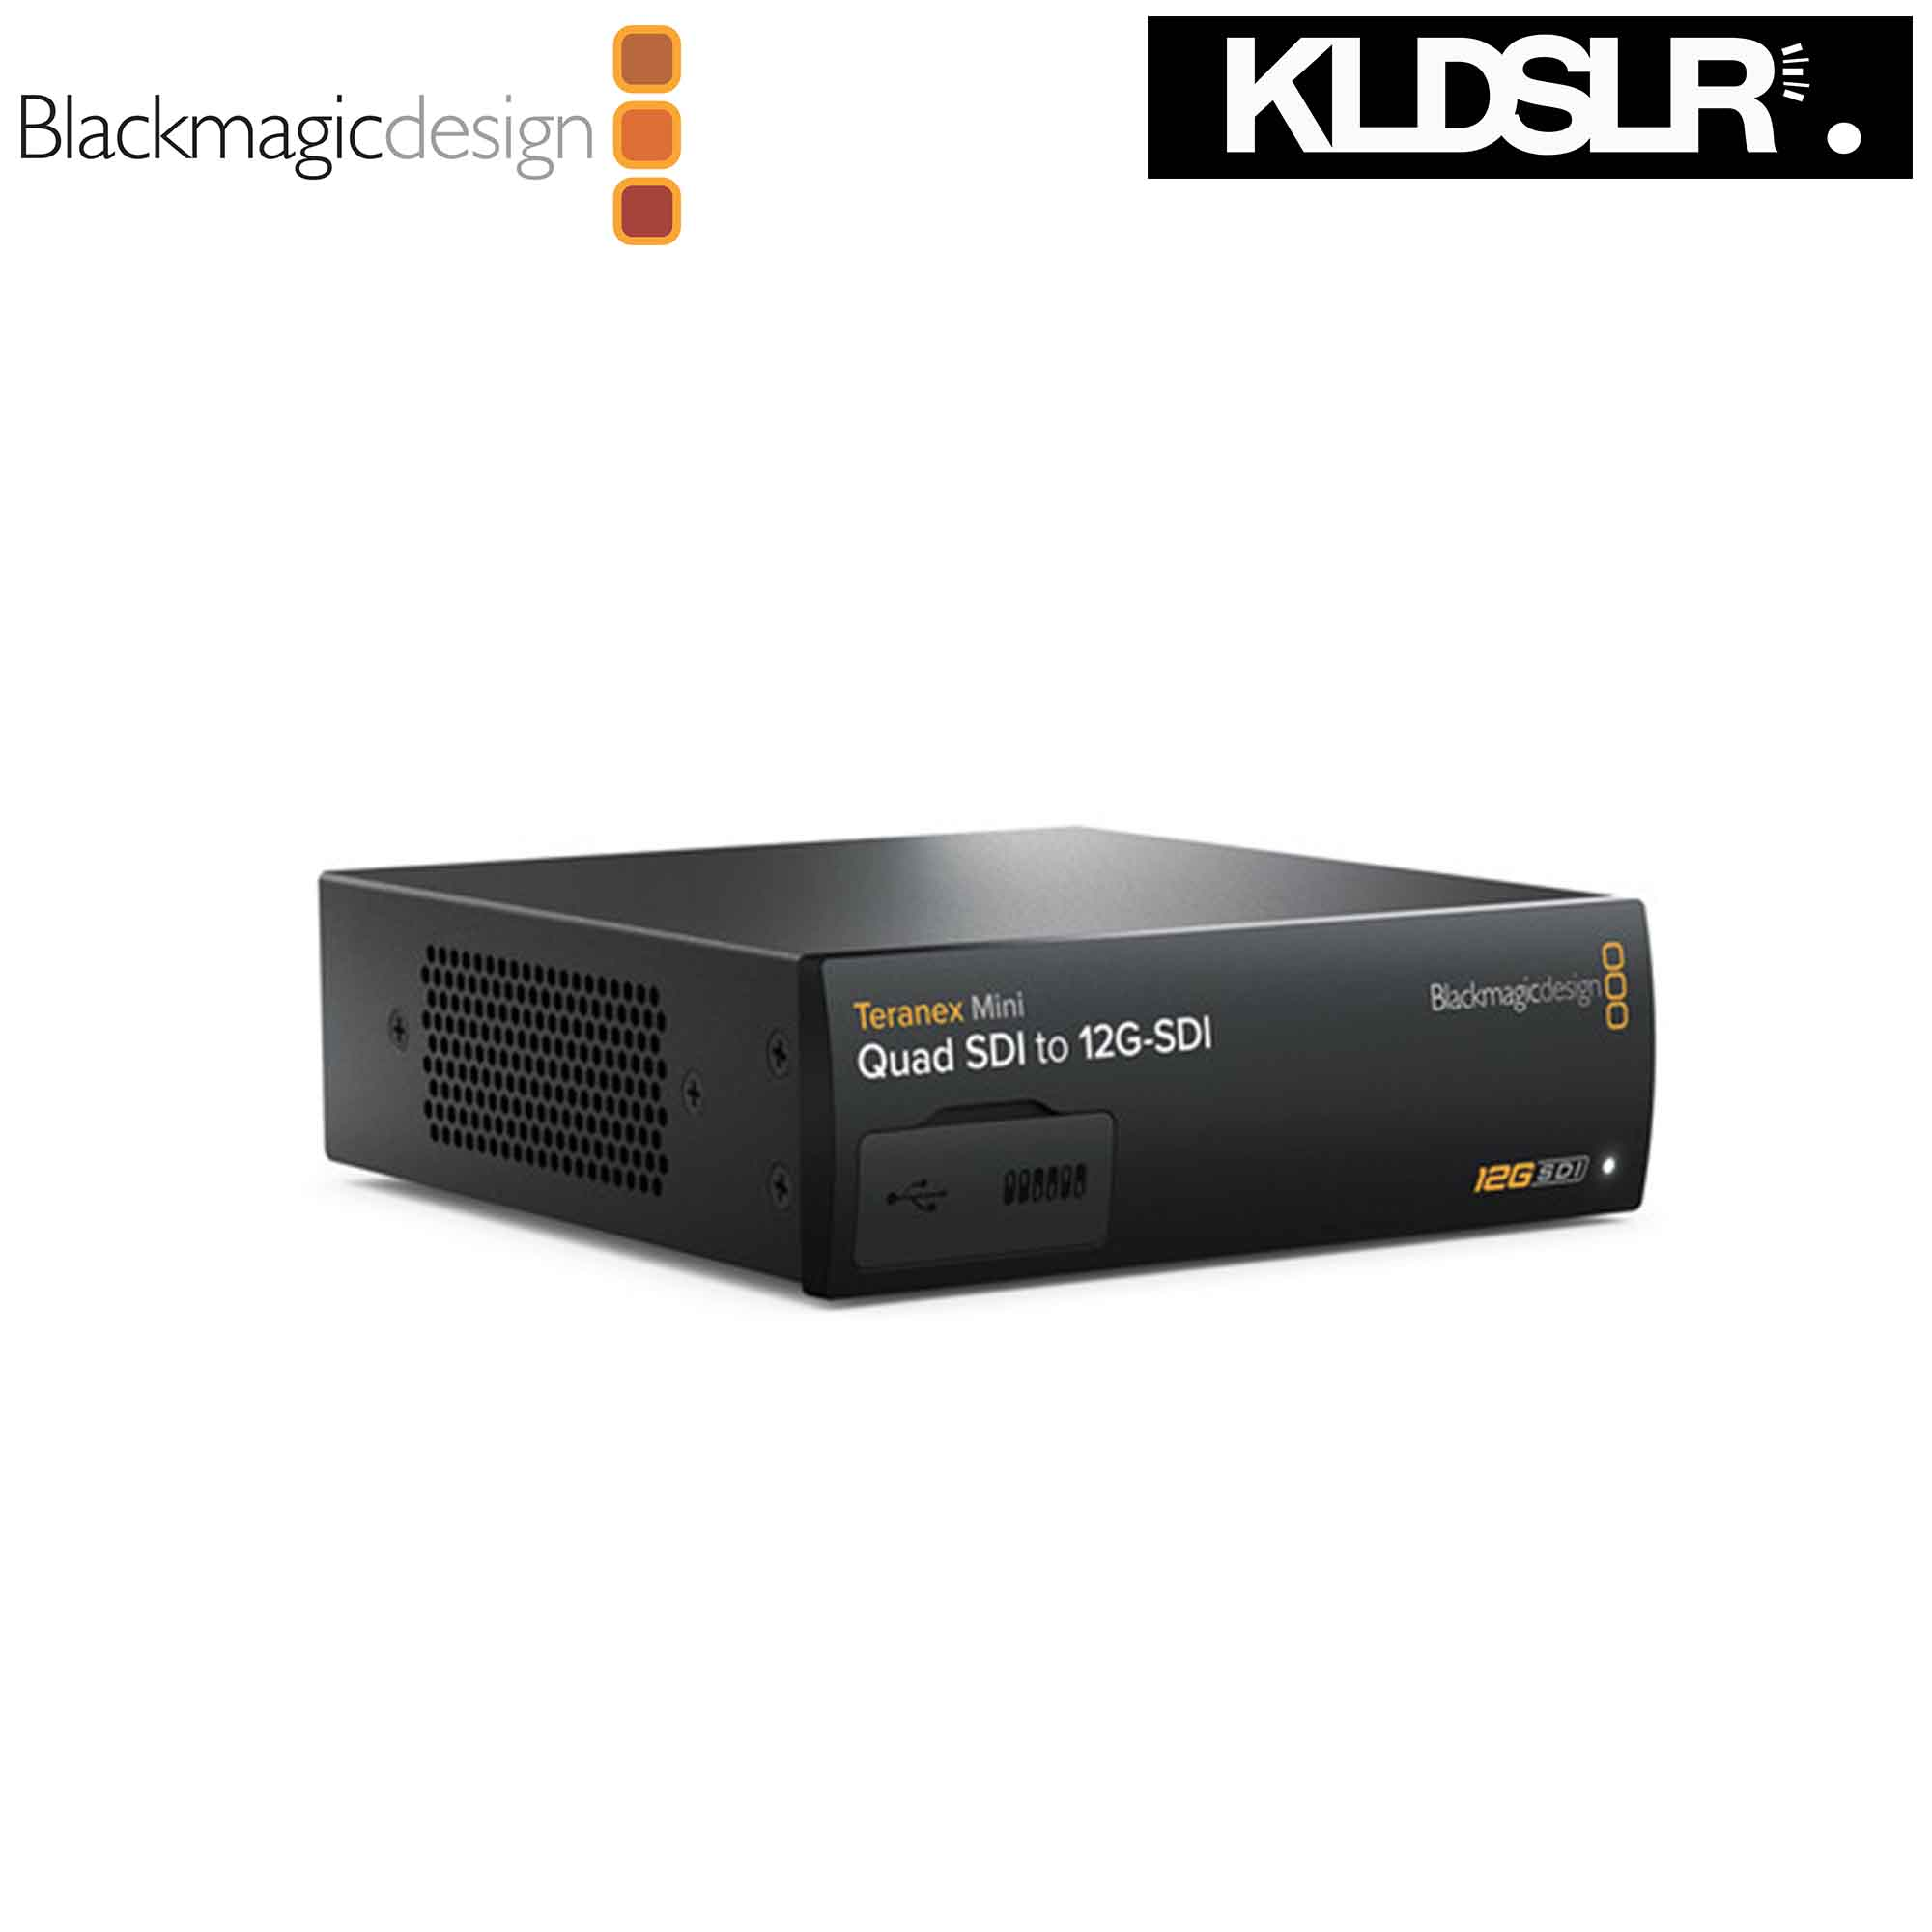 Blackmagic Design Teranex Mini Quad SDI to SDI 12G Converter (Blackmagic Malaysia)